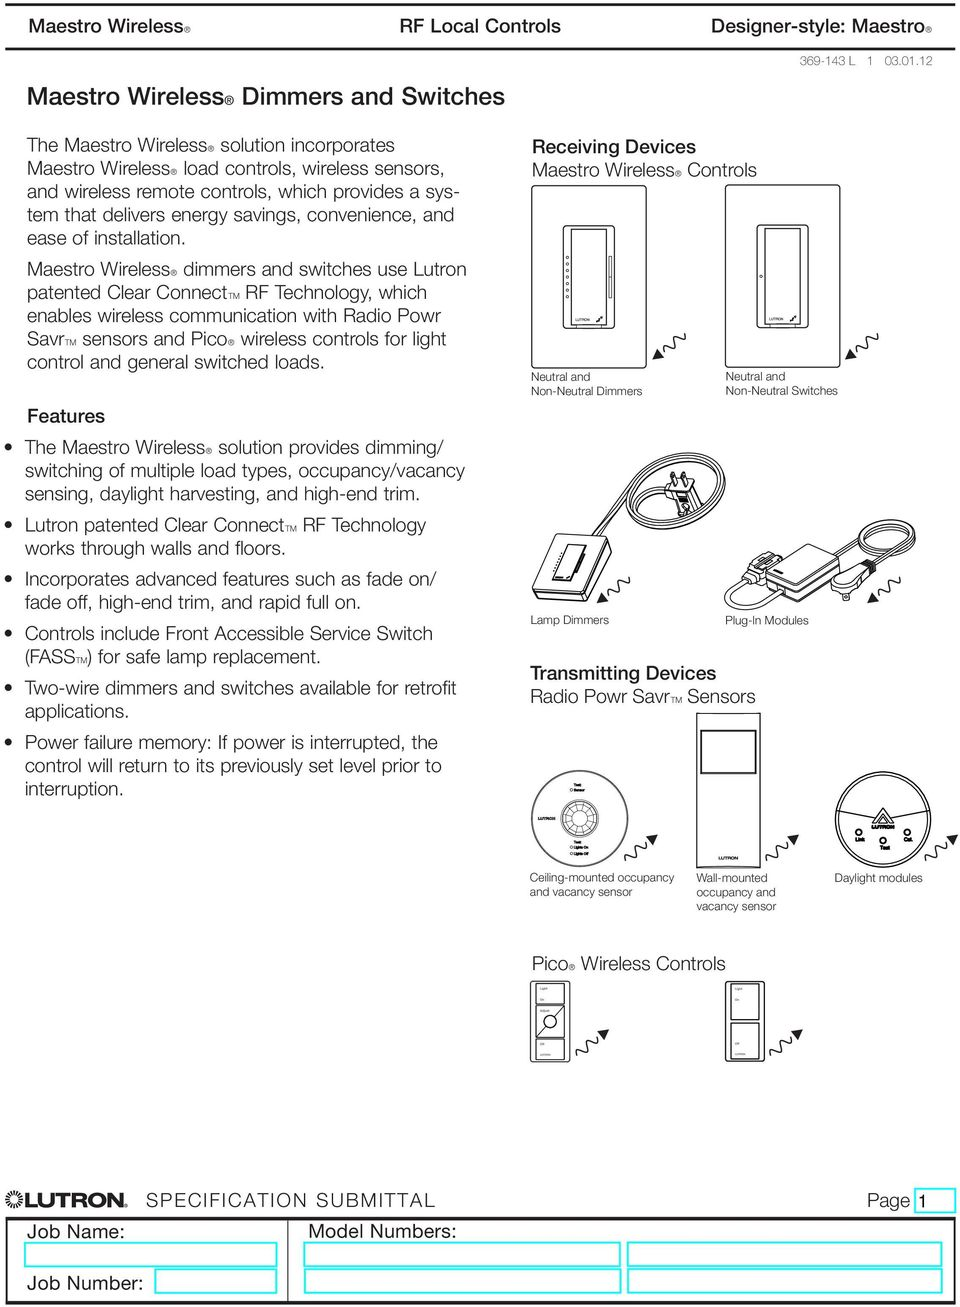 iris zwave ge 45637 wireless lighting lowes maestro wirelessr dimmers and switches use lutron patented clear connectt rf technology which enables wireless wireless dimmers switches pdf